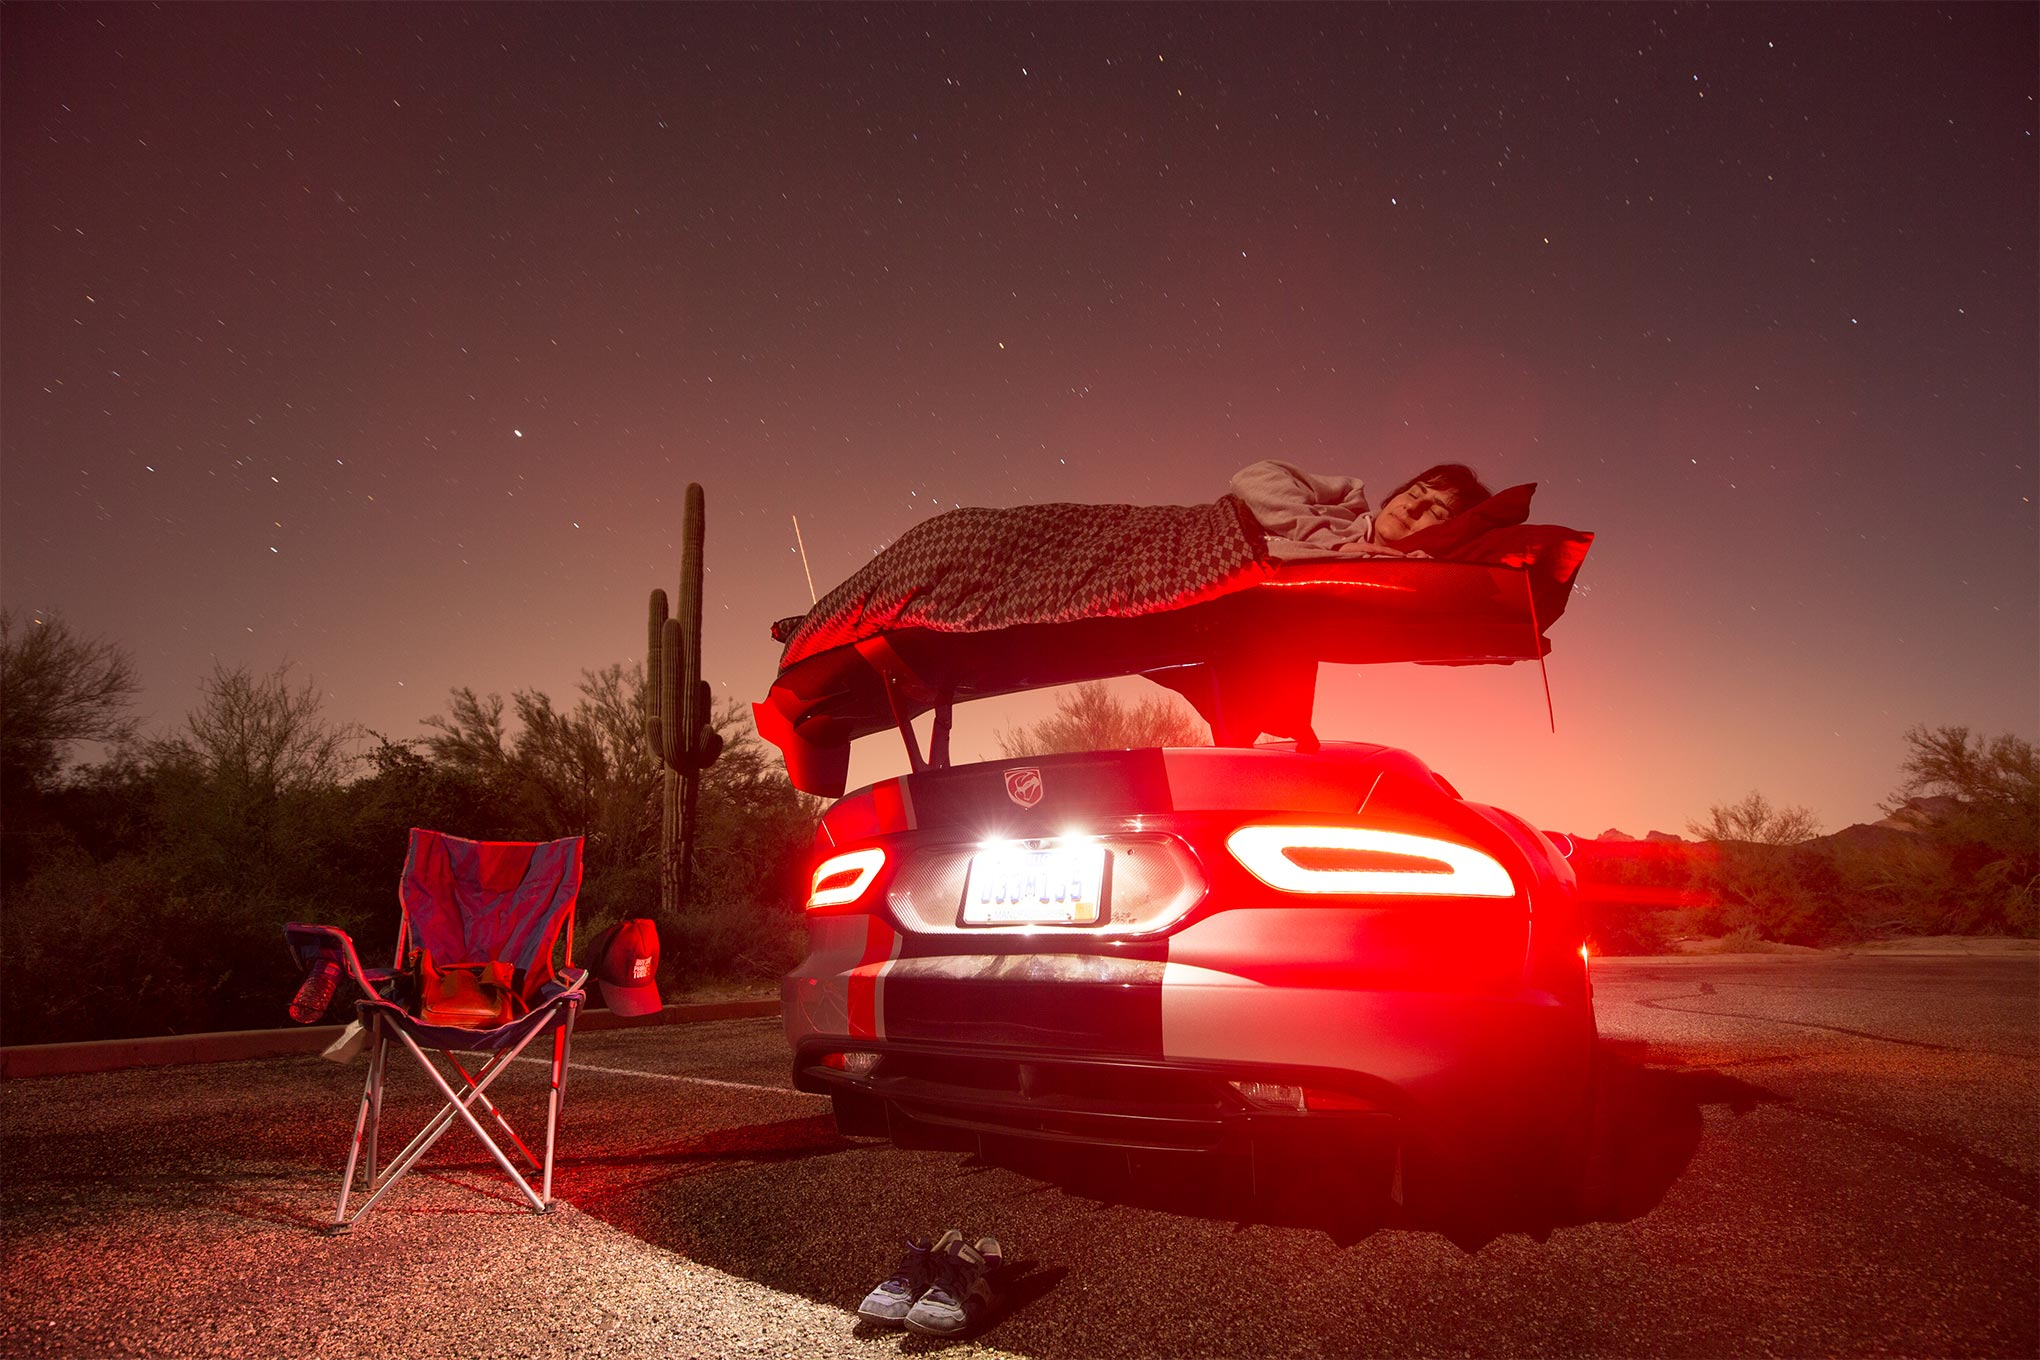 Driver in blanket lying on spoiler of 2016 Dodge Viper ACR and sleeping under stars